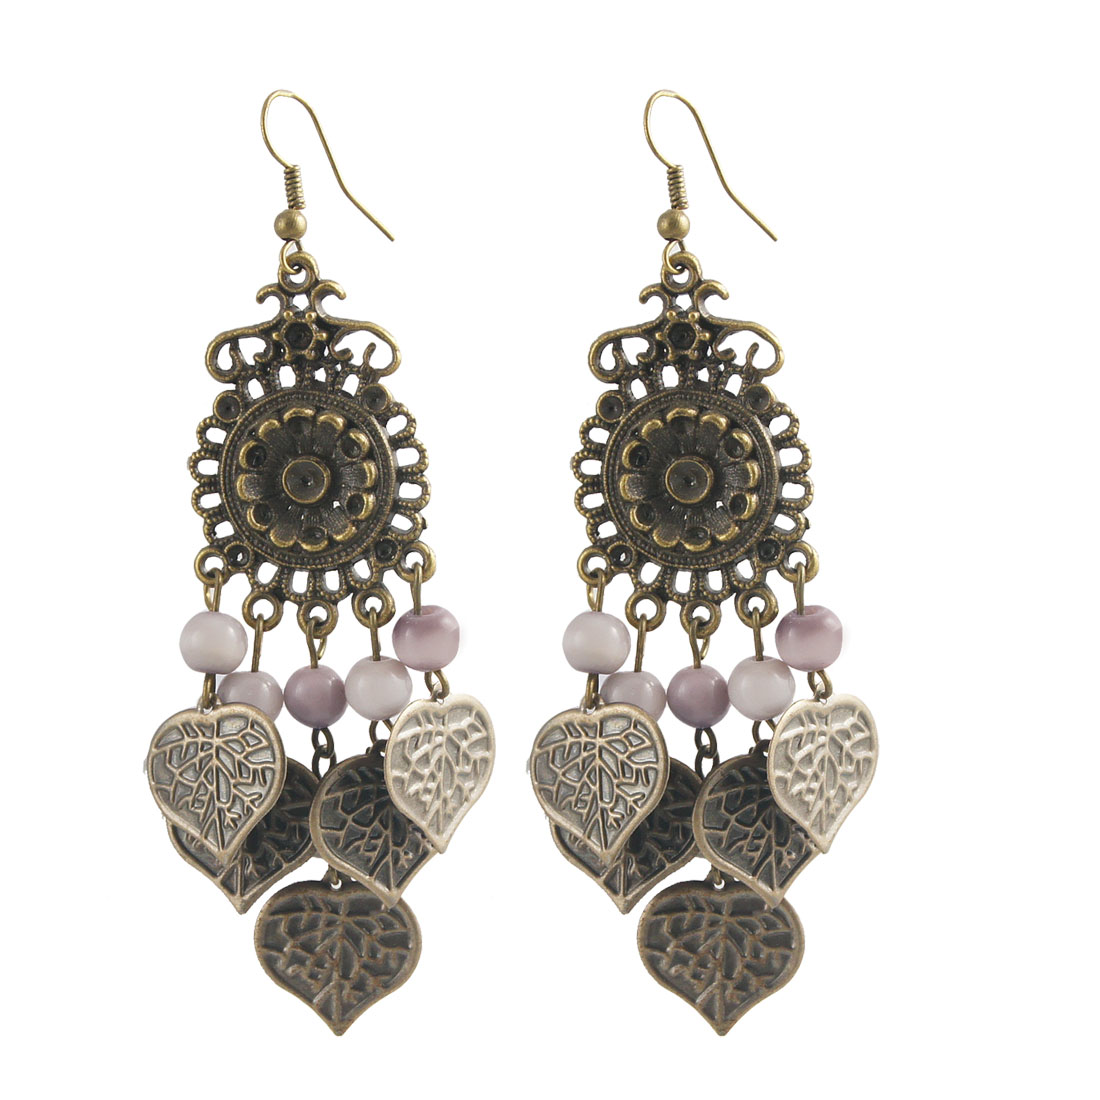 Pair Bronze Tone Thistle Plastic Beads Metal Heart Shape Leaves Pendant Earrings